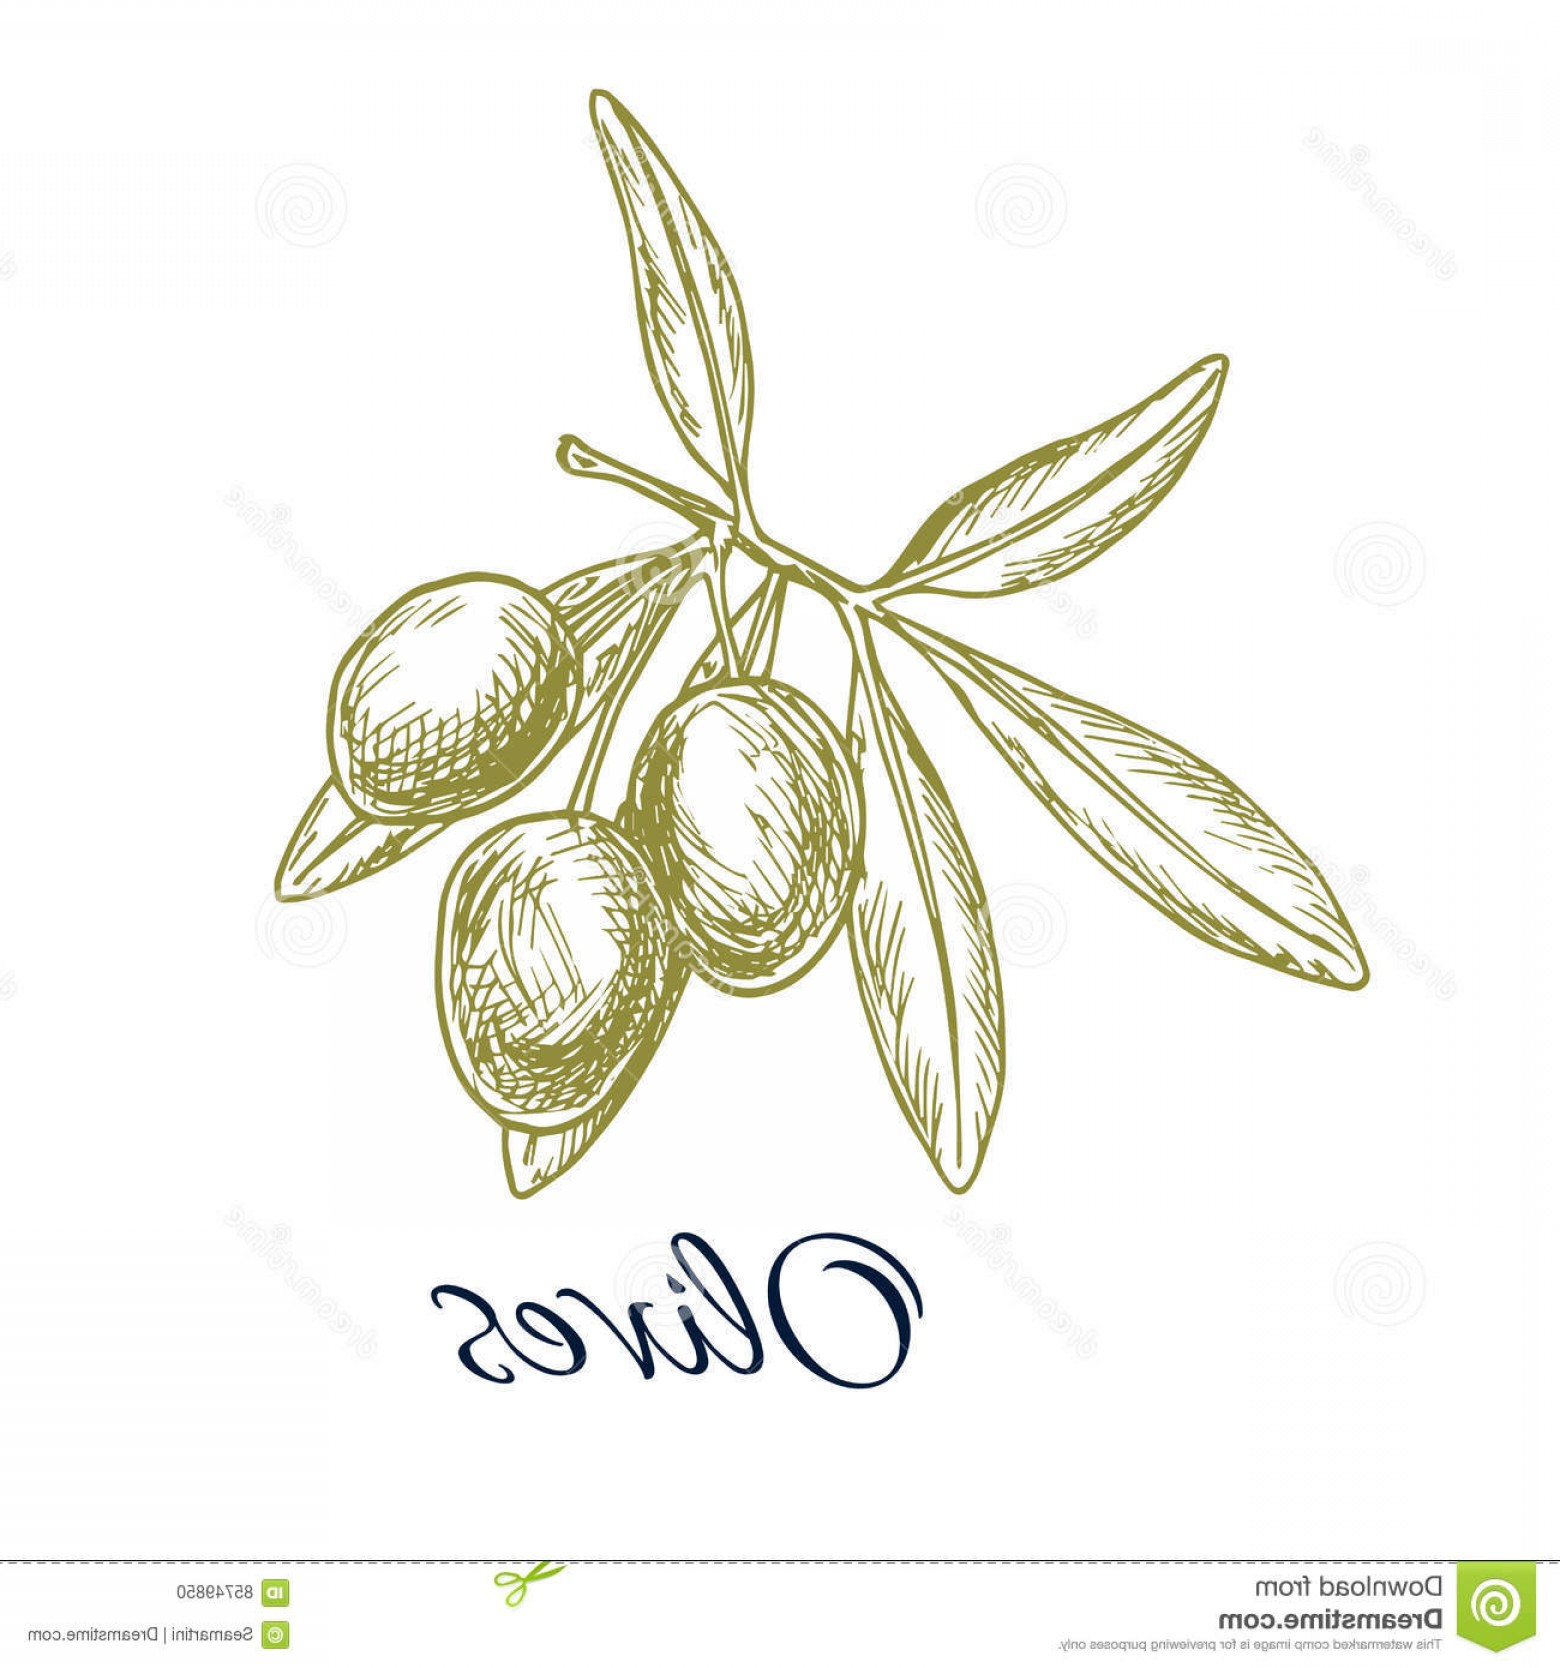 Olive Vector: Stock Illustration Olive Branch Green Olives Vector Sketch Icon Isolated Design Oil Label Healthy Vegetarian Vegan Vegetable Food Image